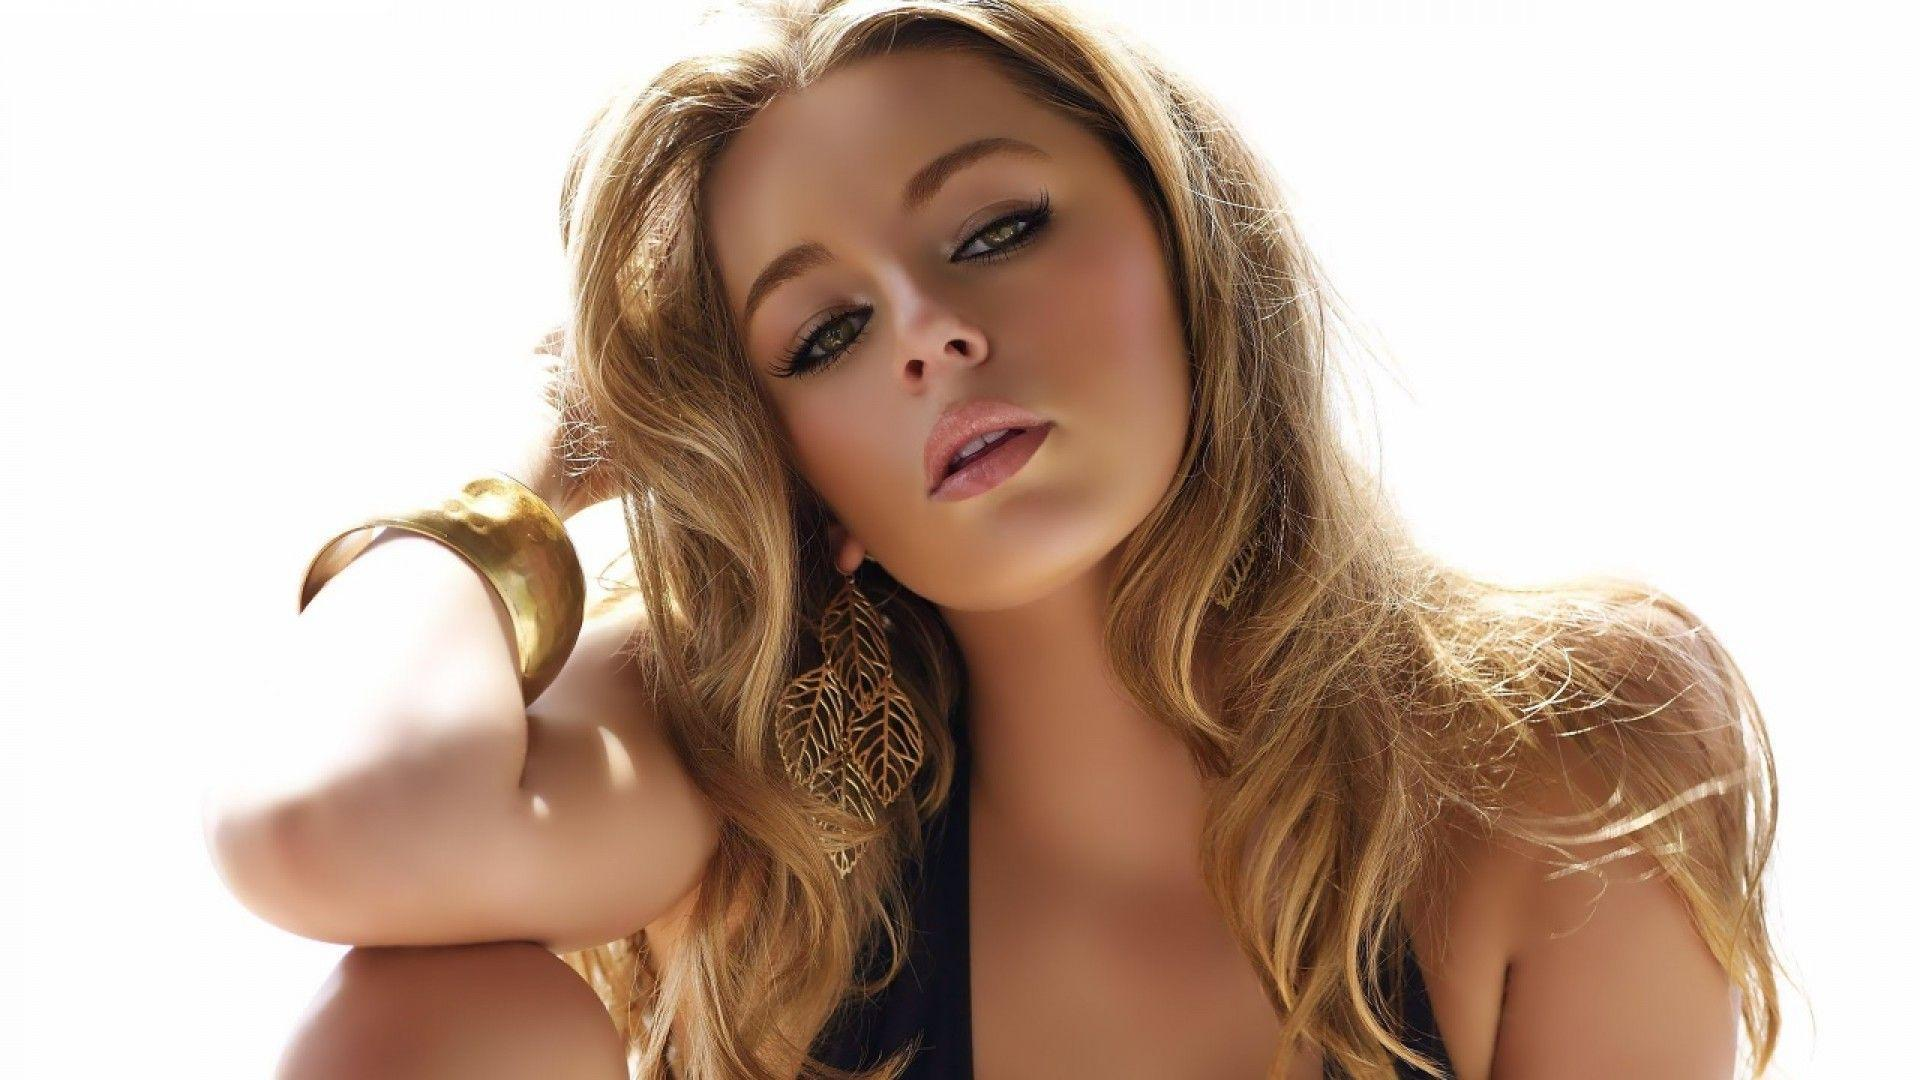 keeley hazell wallpapers wallpaper cave. Black Bedroom Furniture Sets. Home Design Ideas